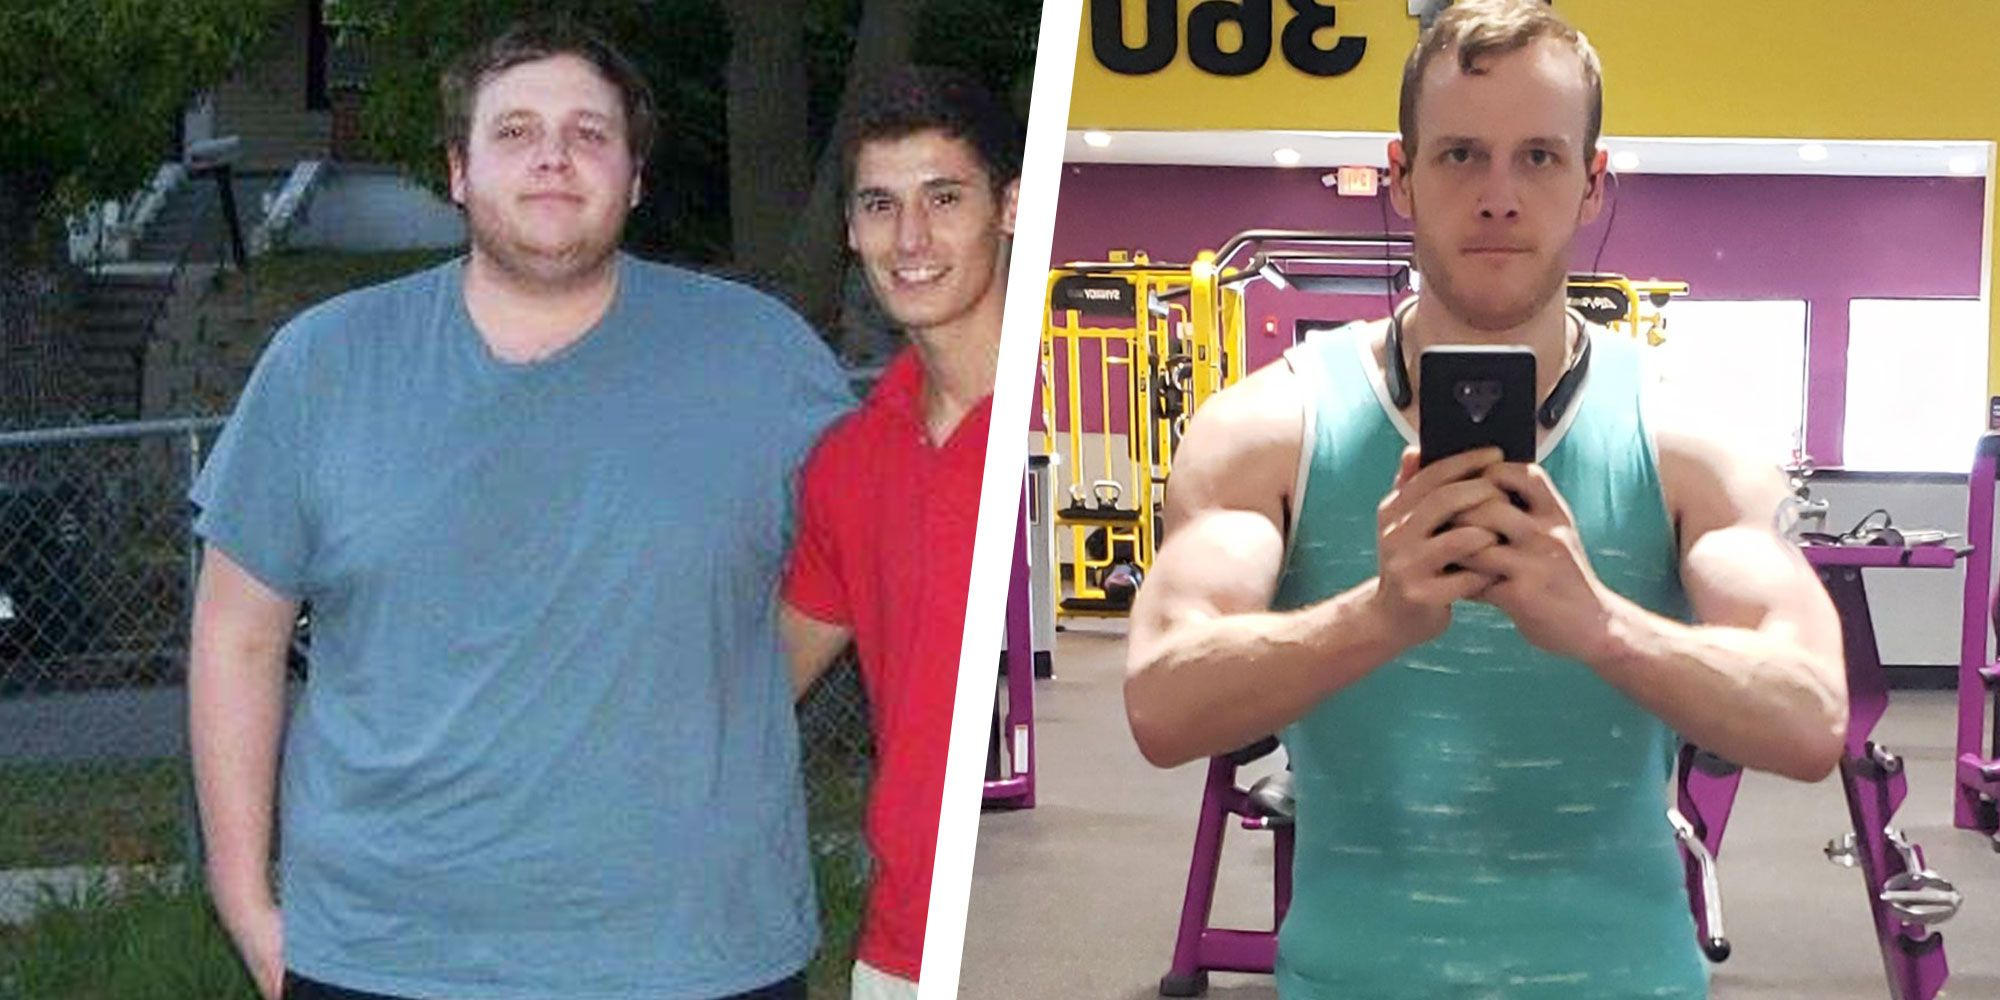 How the Keto Diet Helped This Guy Lose More Than 100 Pounds and Get Jacked